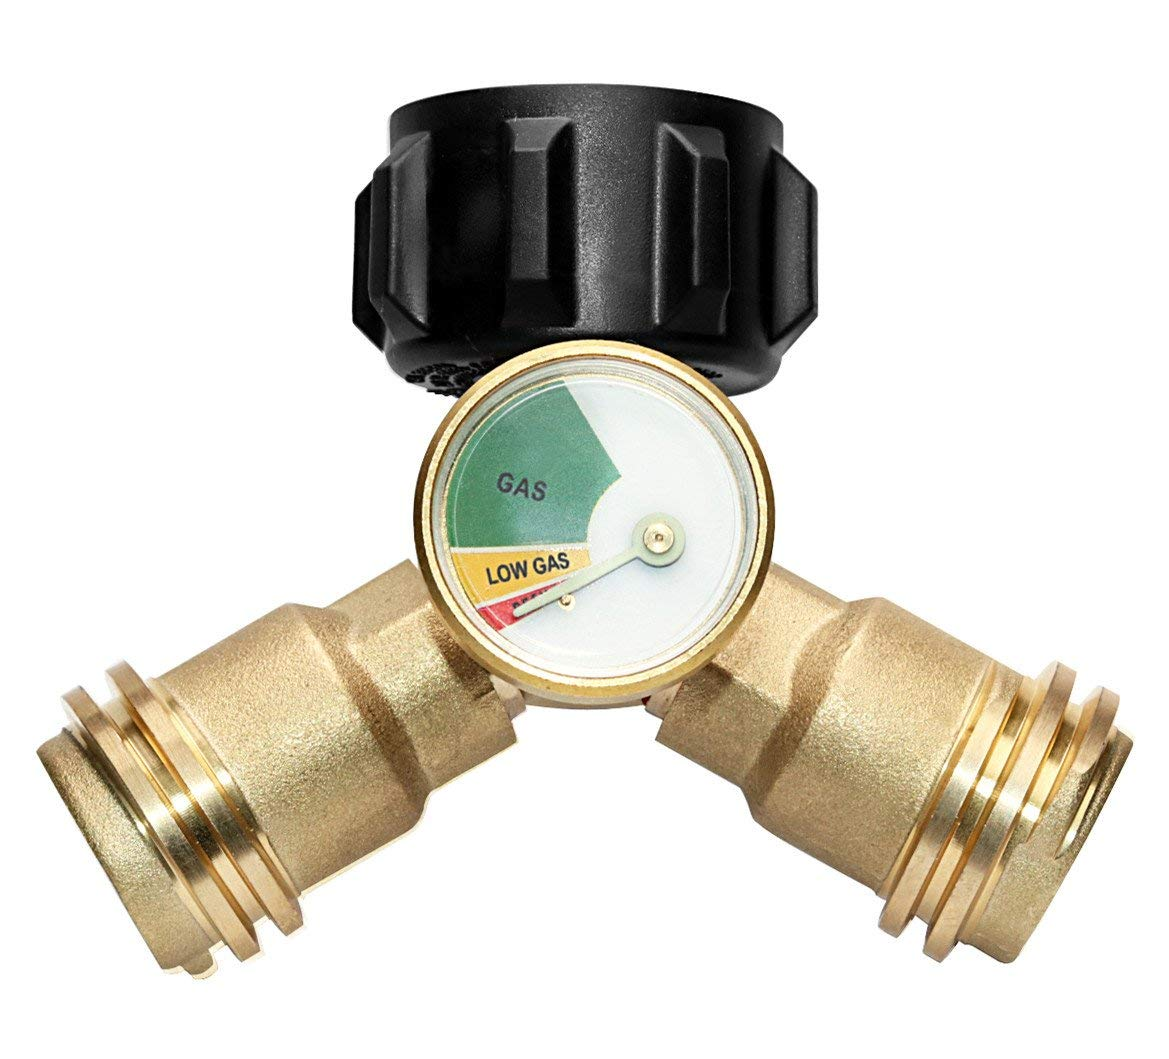 DOZYANT Propane Y-Splitter Tee Adapter Connector With Propane Tank Gauge Propane Tank Gauge Level Indicator Leak Detector Gas Pressure Meter, 100% Solid Brass with 1 Female QCC and 2 Male QCC